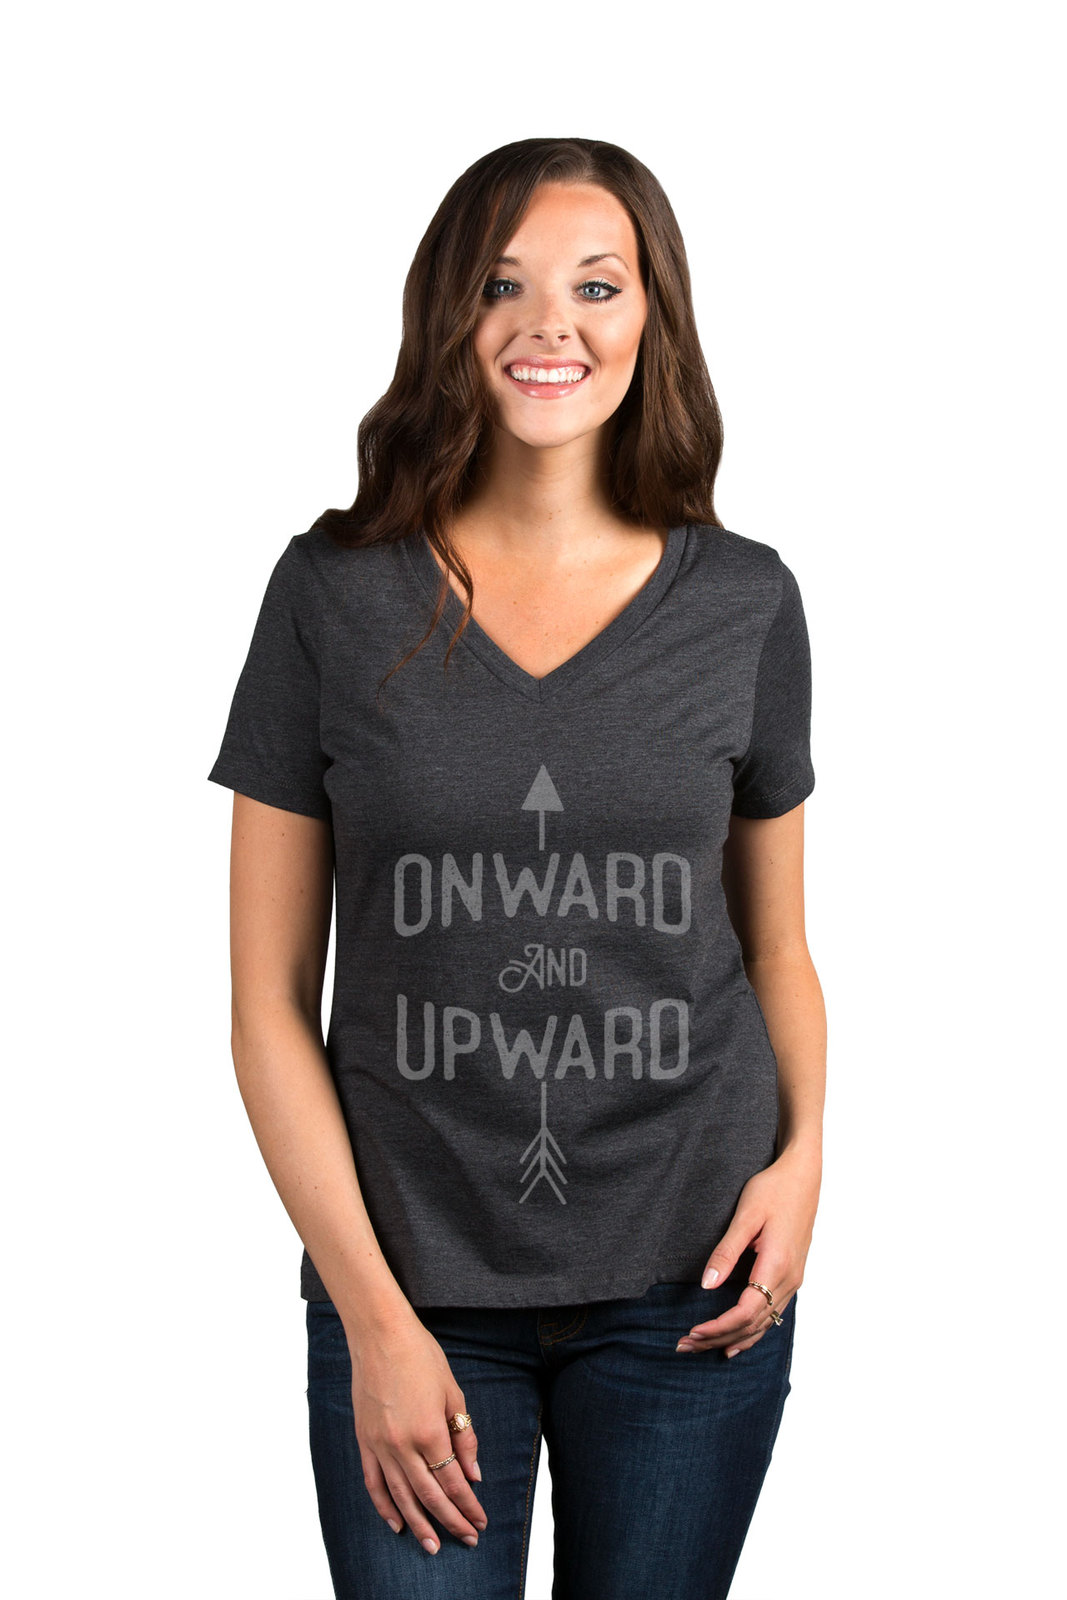 Thread Tank Onward And Upward Women's Relaxed V-Neck T-Shirt Tee Charcoal